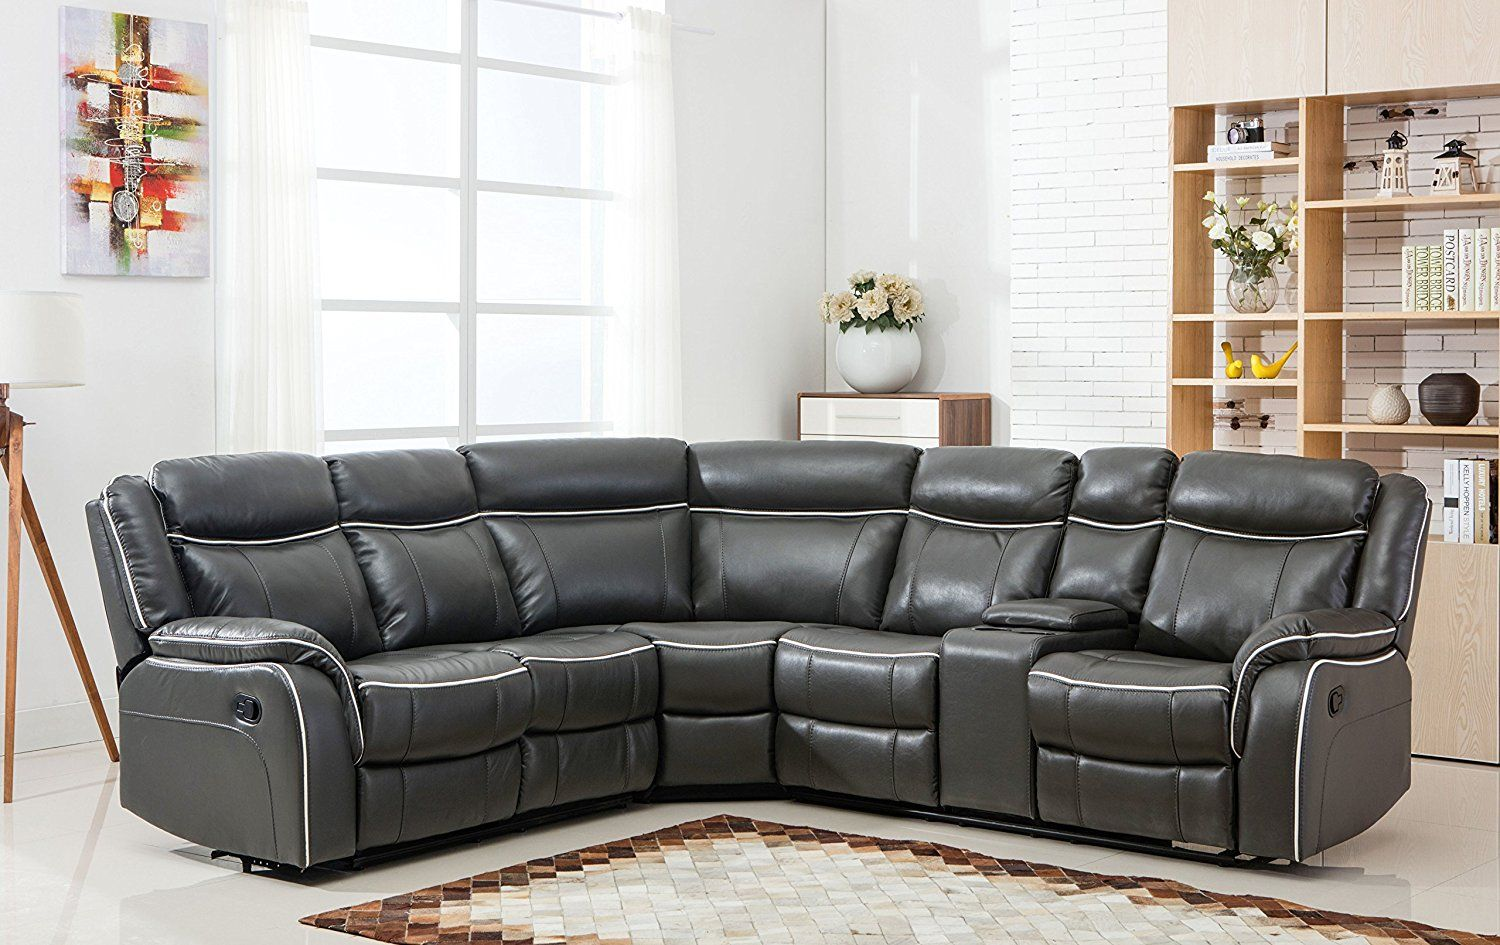 20 Awesome Curved Leather Sectional Sofa The Urban Interior Corner Sectional Sofa Reclining Sectional Grey Sectional Sofa